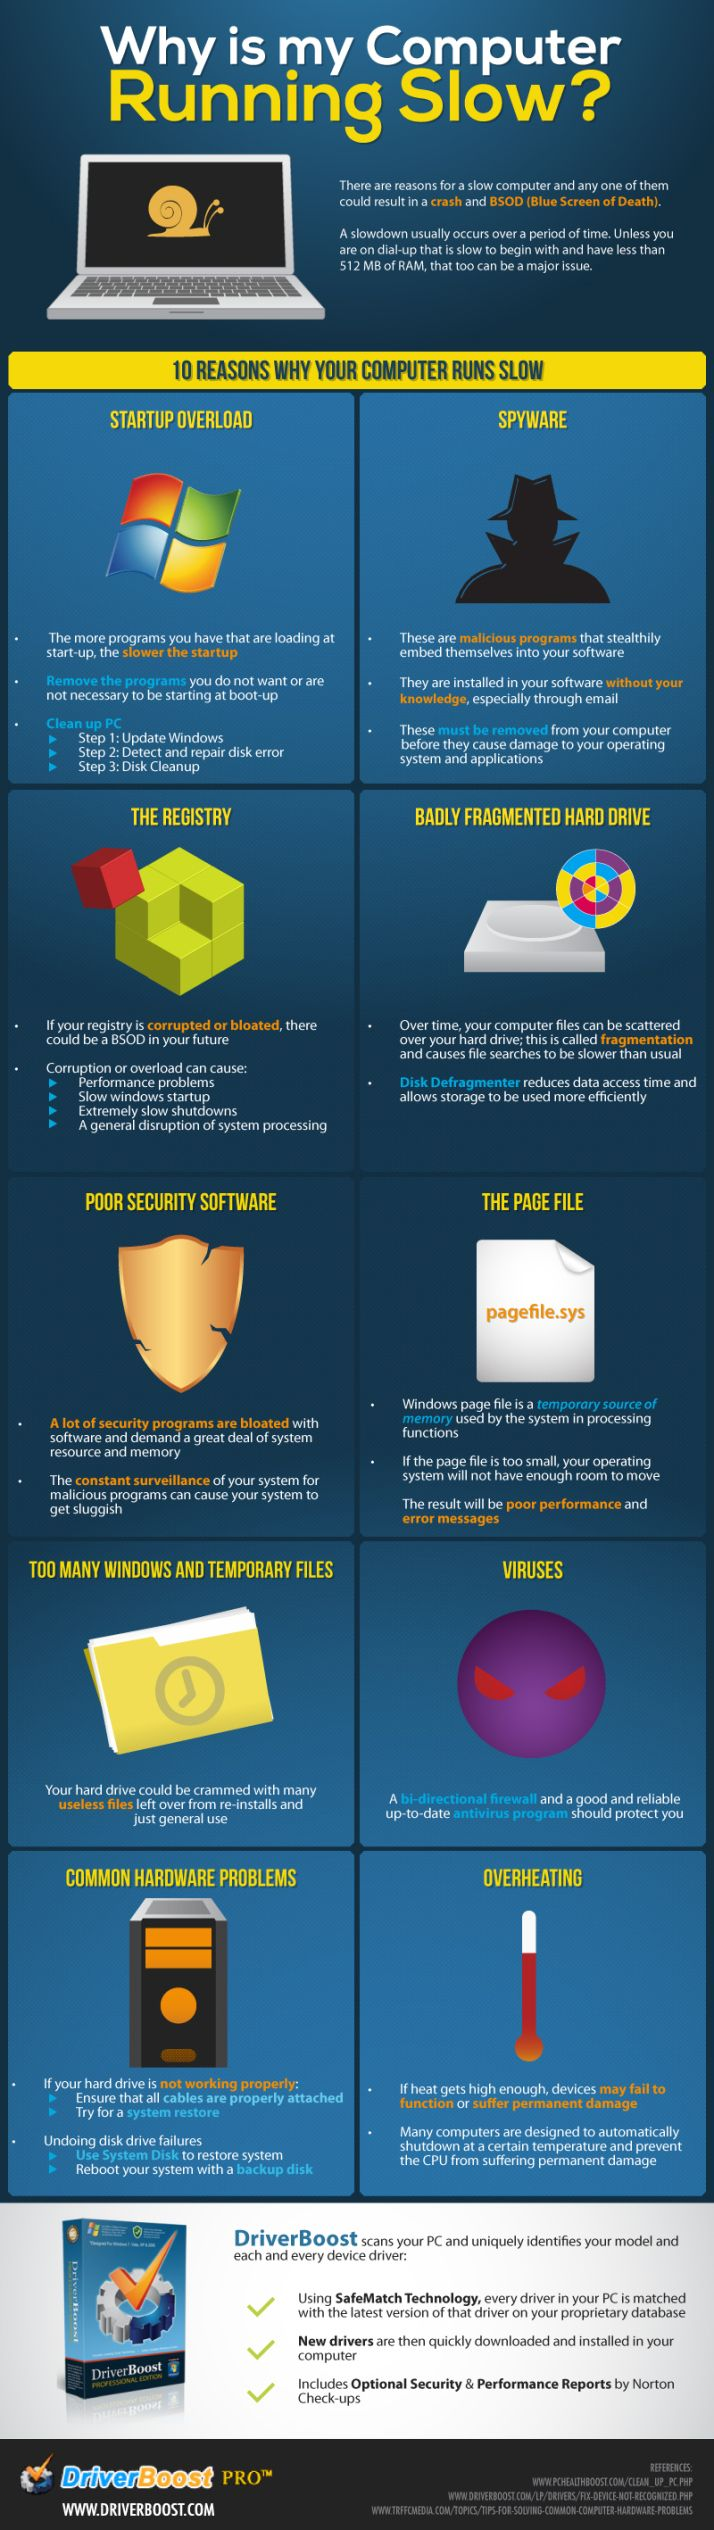 Why is my computer running slow? #infografia #infographic To be the best company you need the best tech talent. Our 15+ years of experience can help. Email us at carlos@recruitingforgood.com